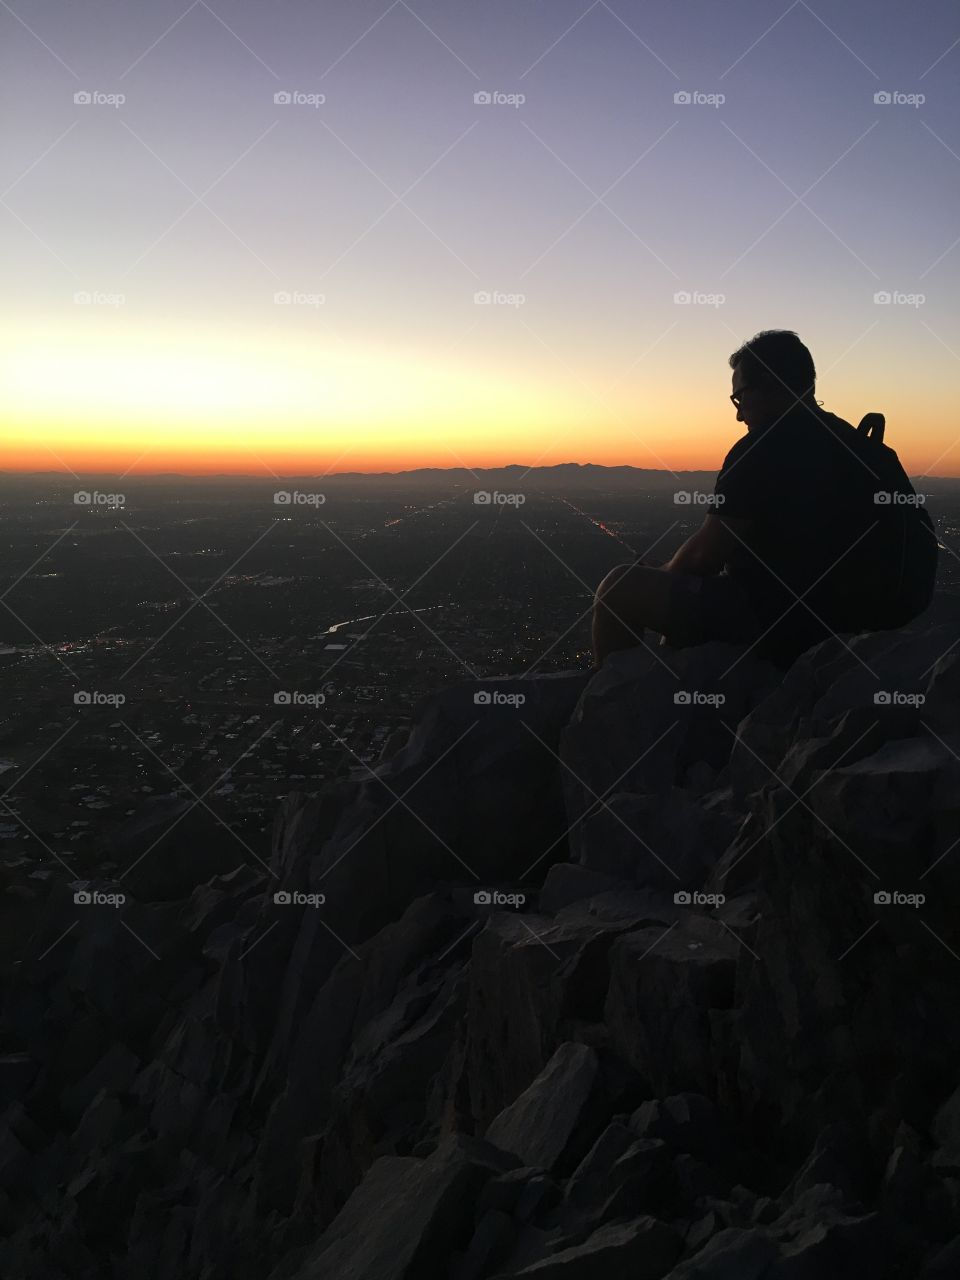 Watching the sunset from Piestwa Peak in Phoenix, AZ